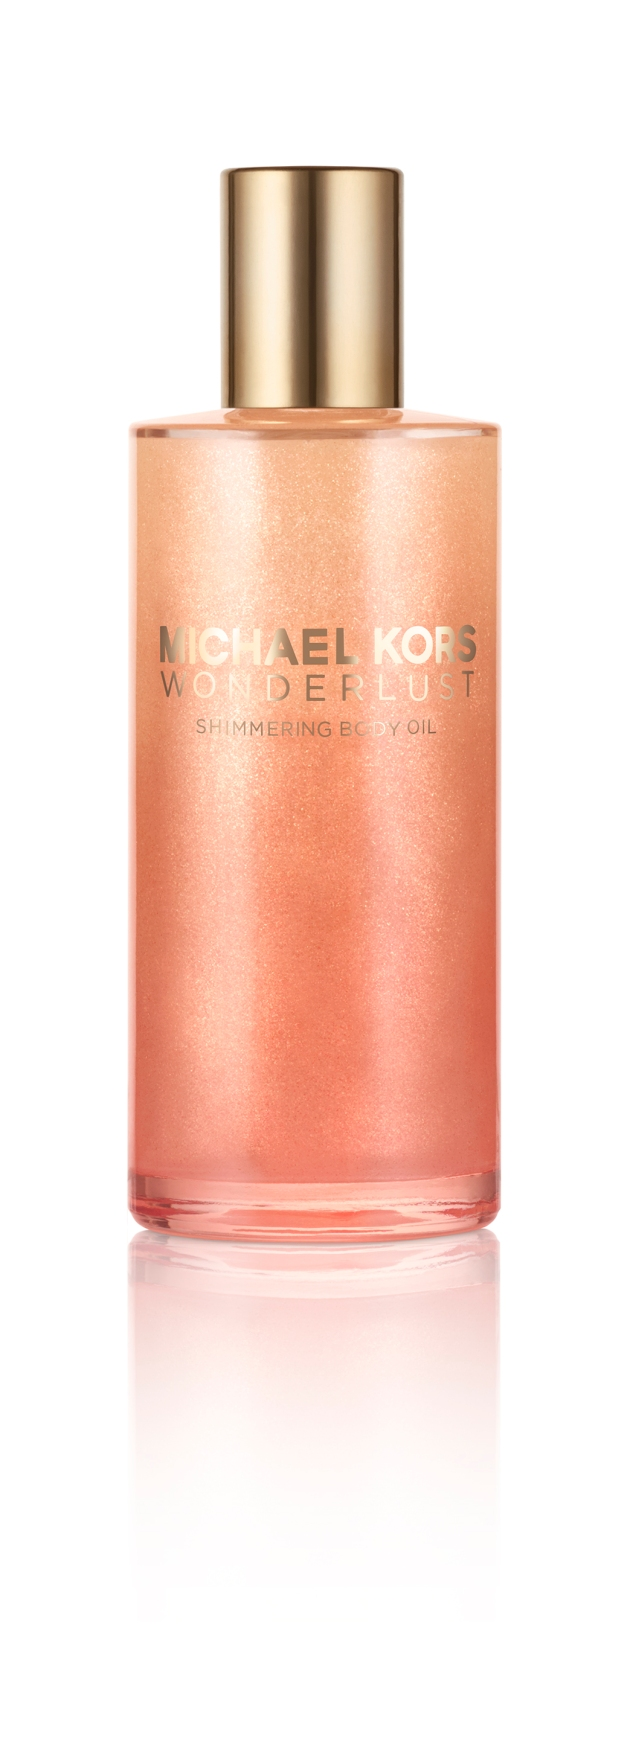 FY20_MK_Wonderlust_Shimmering_Body_Oil_100ml_40F7-01_silo.psd